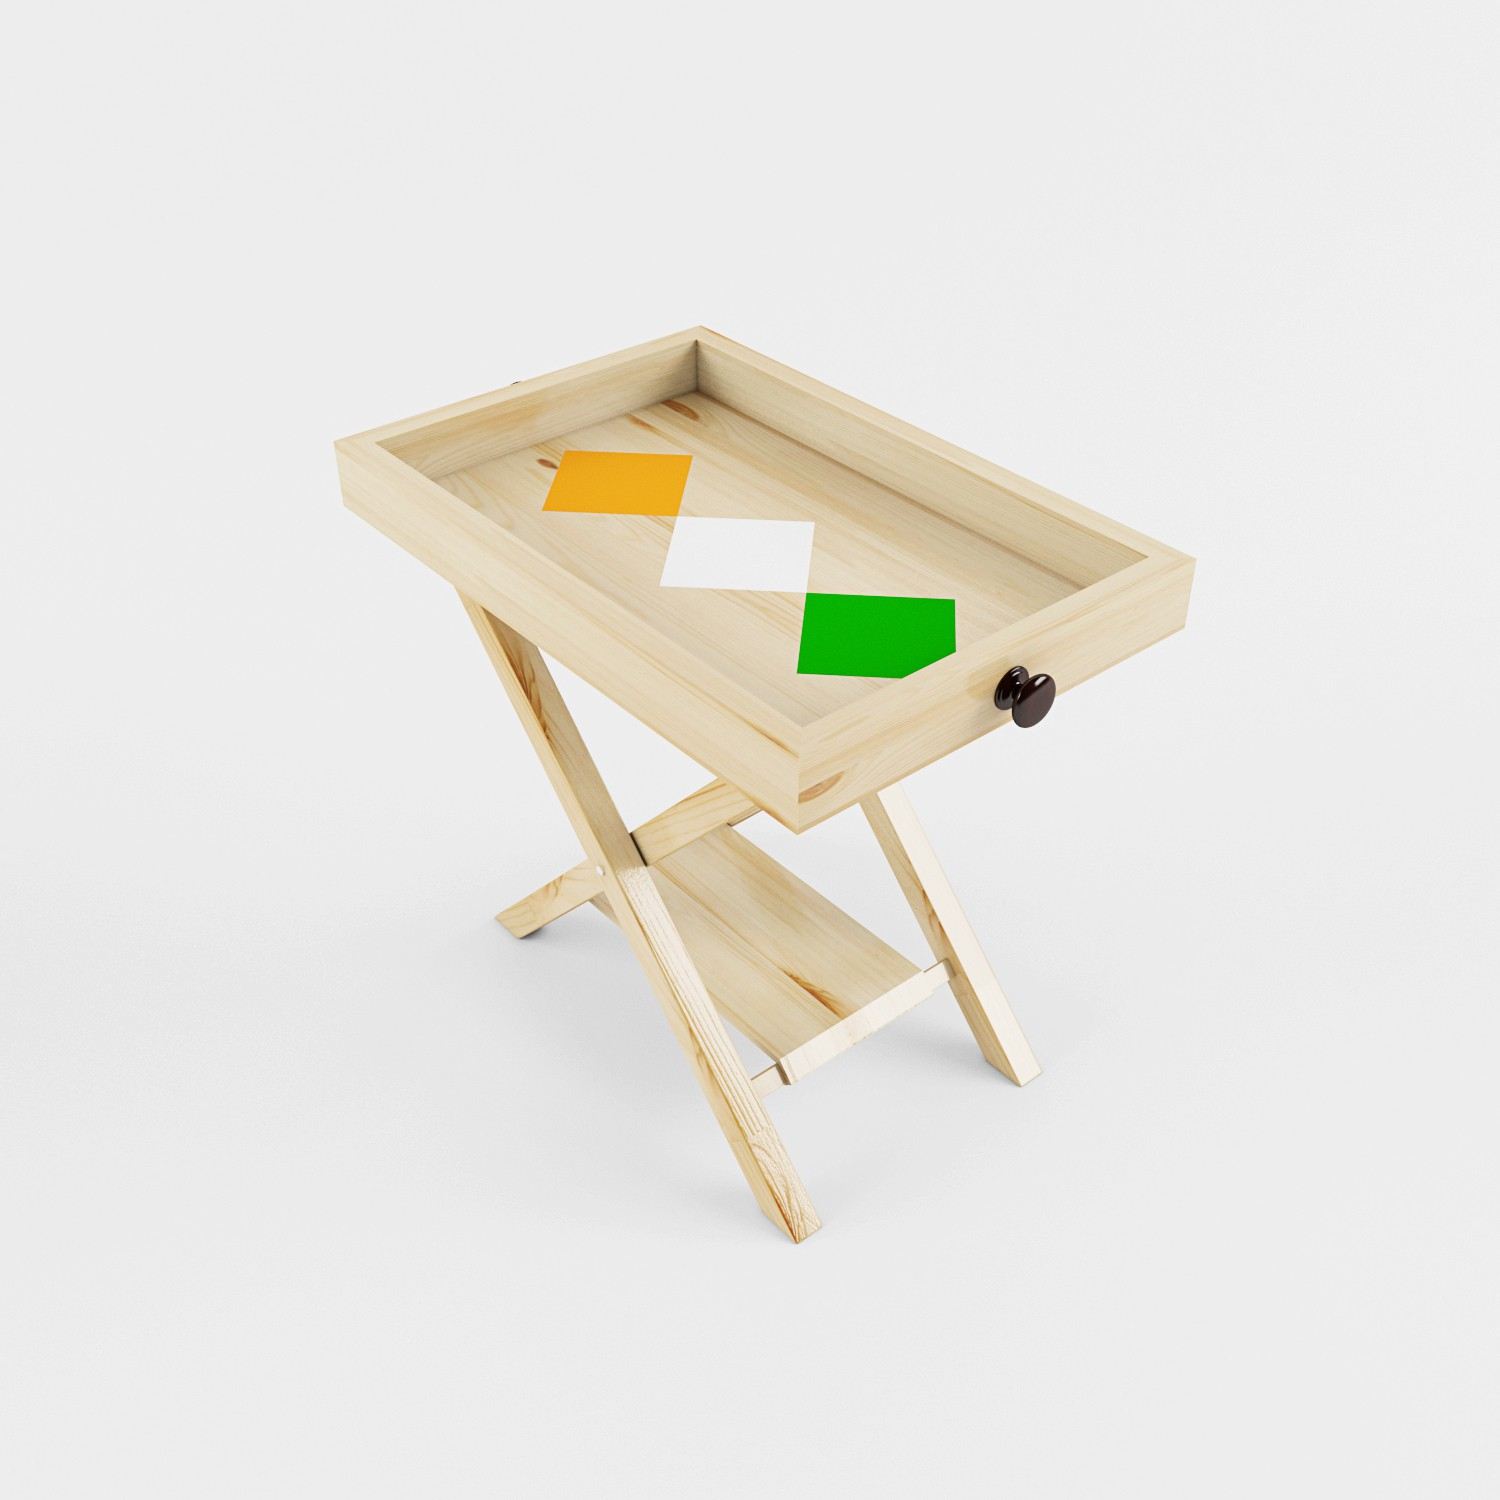 View Smalshop Independence Day Special Solid Wood Side Table(Finish Color - Natural Pine with Tricolor Paint Details) Price Online(Smalshop)